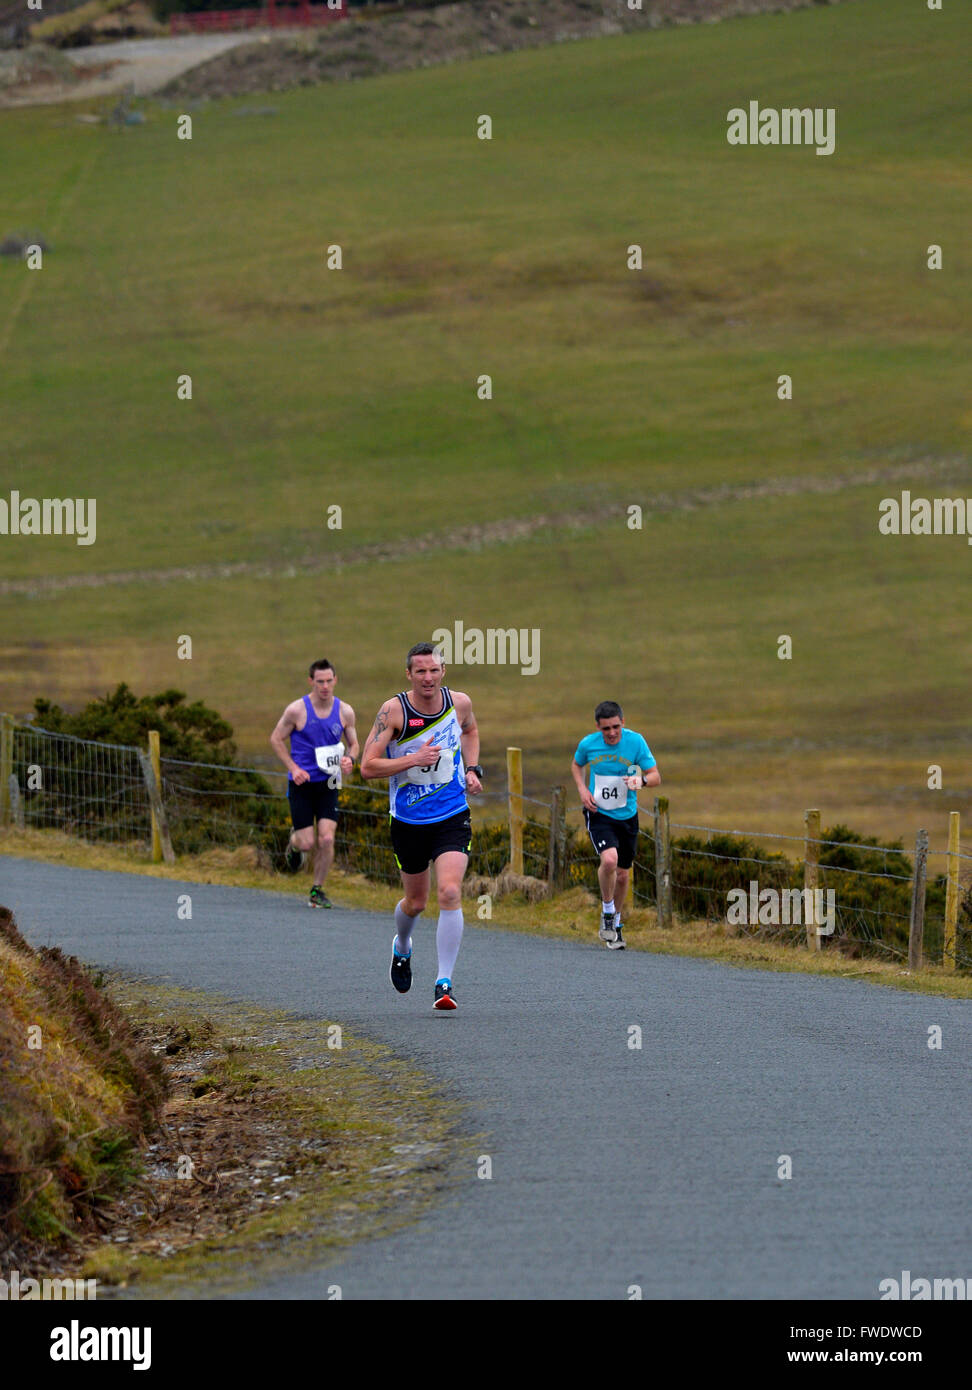 Runners compete in uphill King of the Warriors road race in Burt, County Donegal, Ireland. - Stock Image